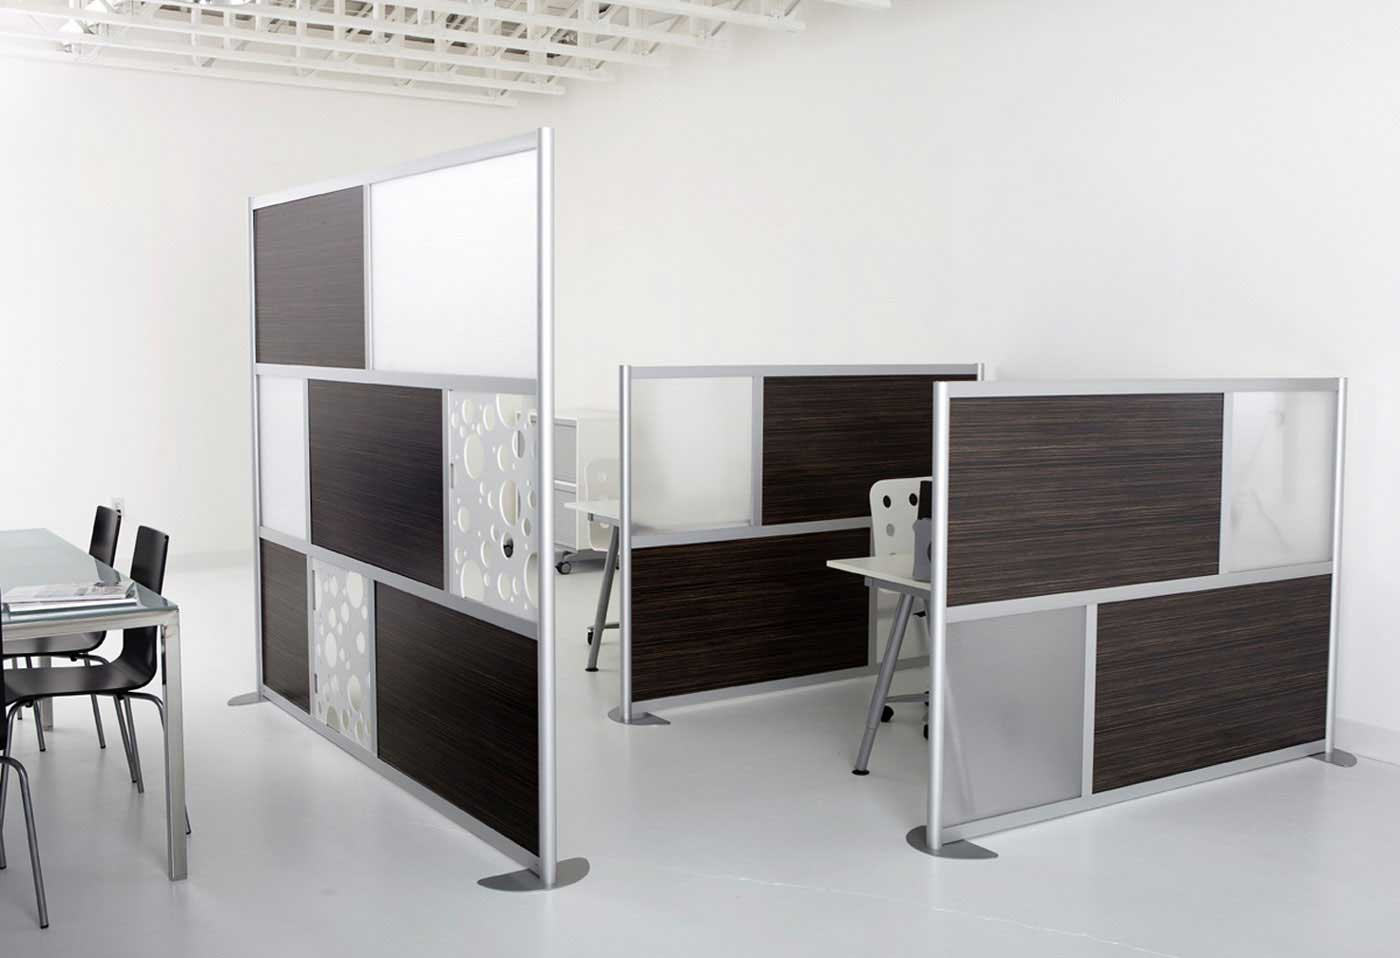 Soundproof room dividers system Modern divider